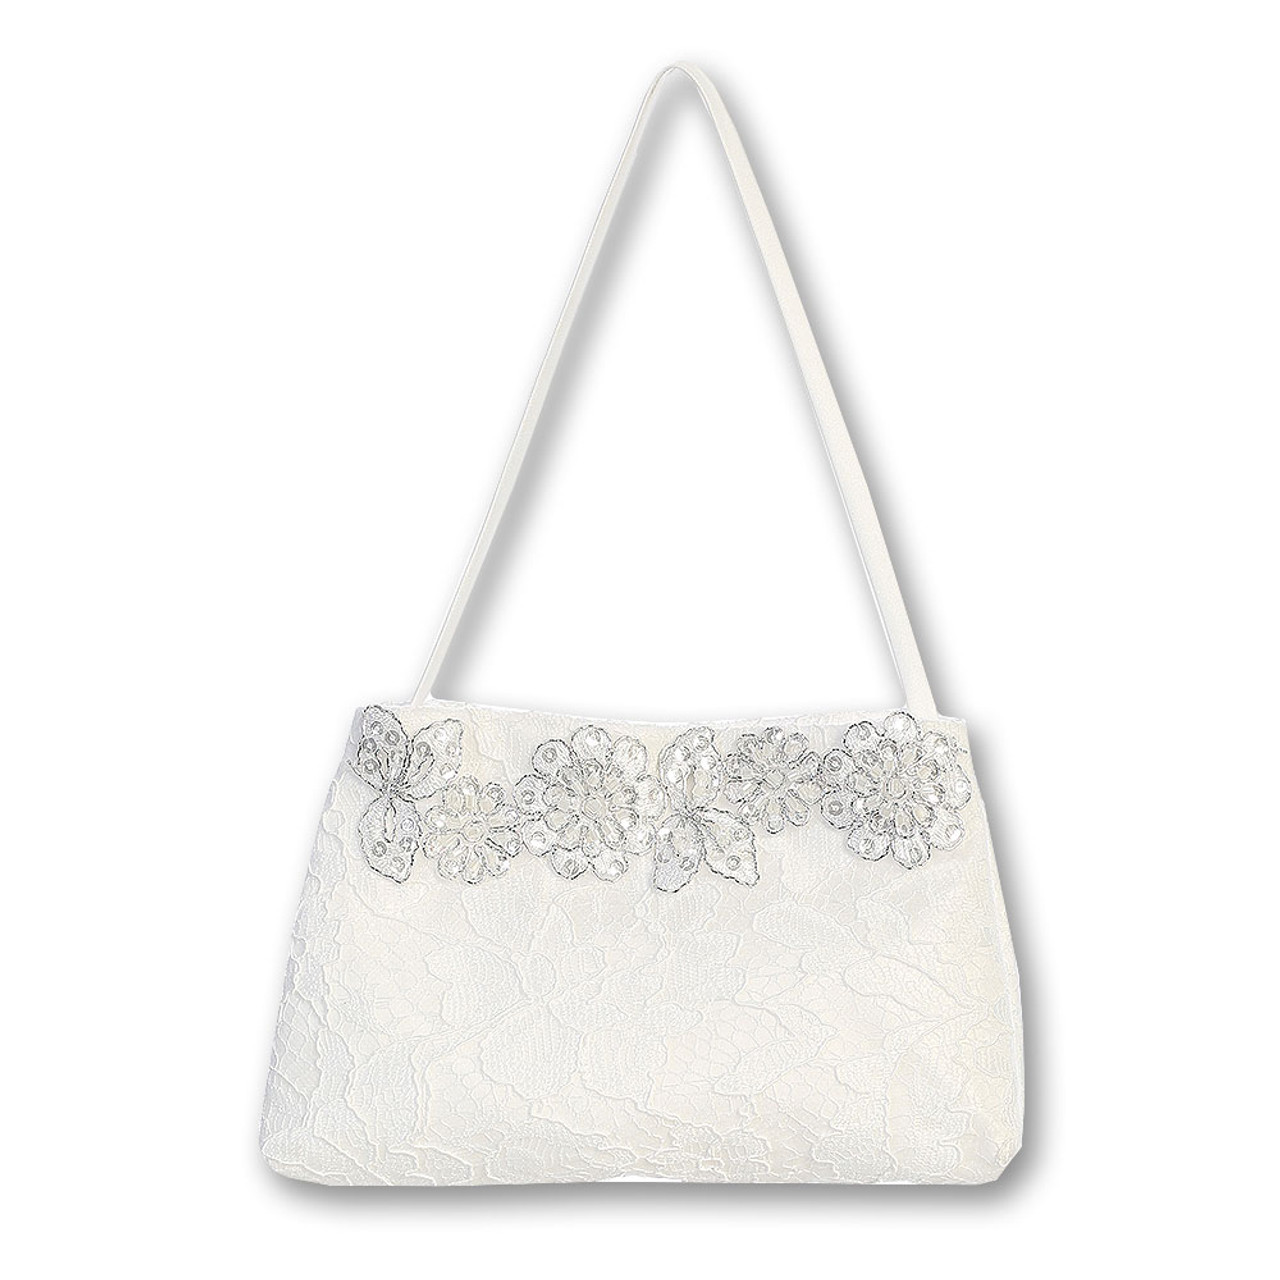 First Communion Purse with Silver Floral Trim